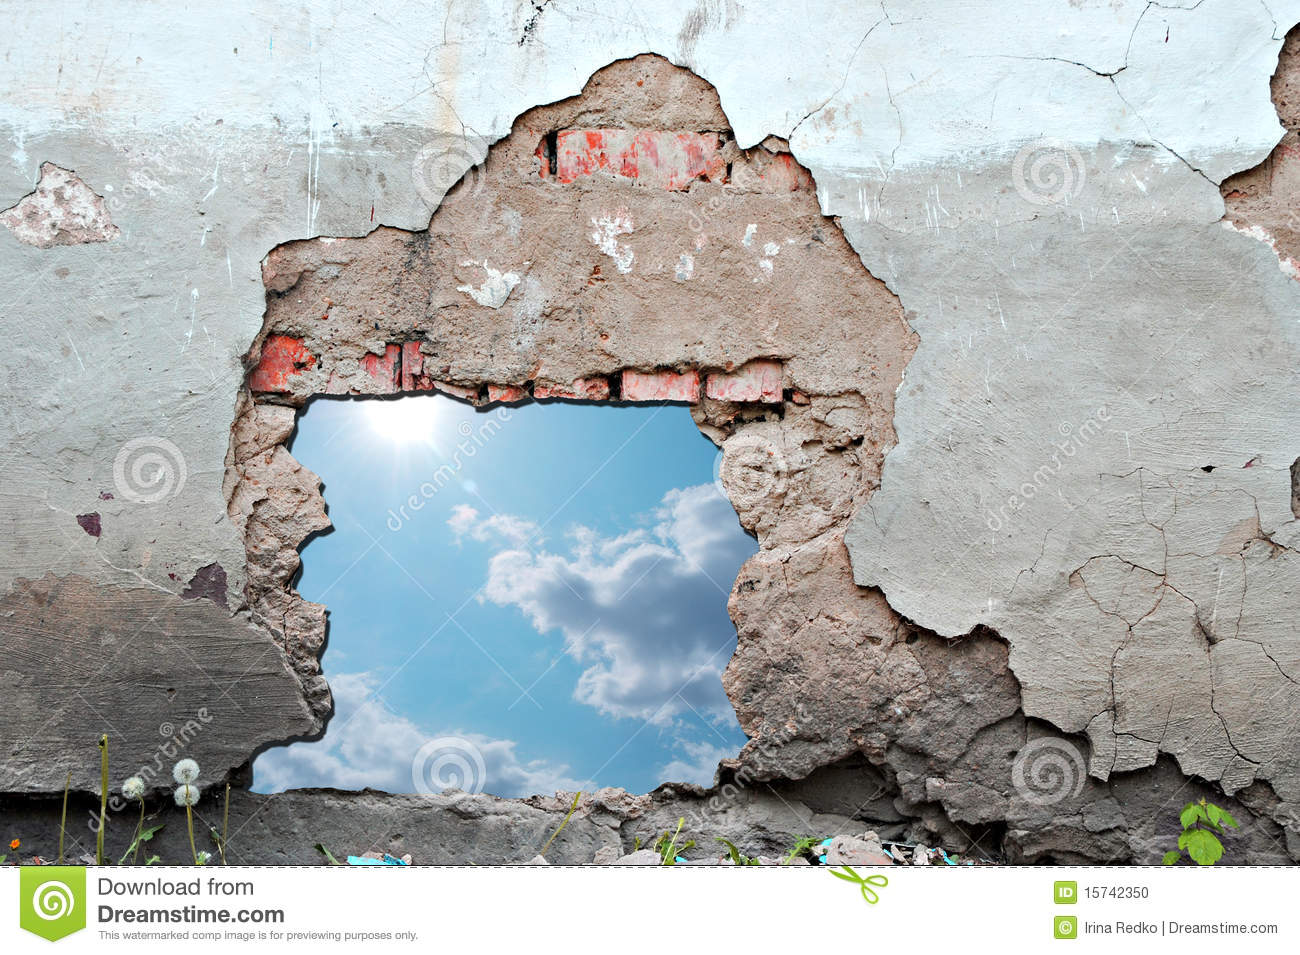 Blue Sky Hole In Aged Brick Wall Stock Photo - Image: 15742350